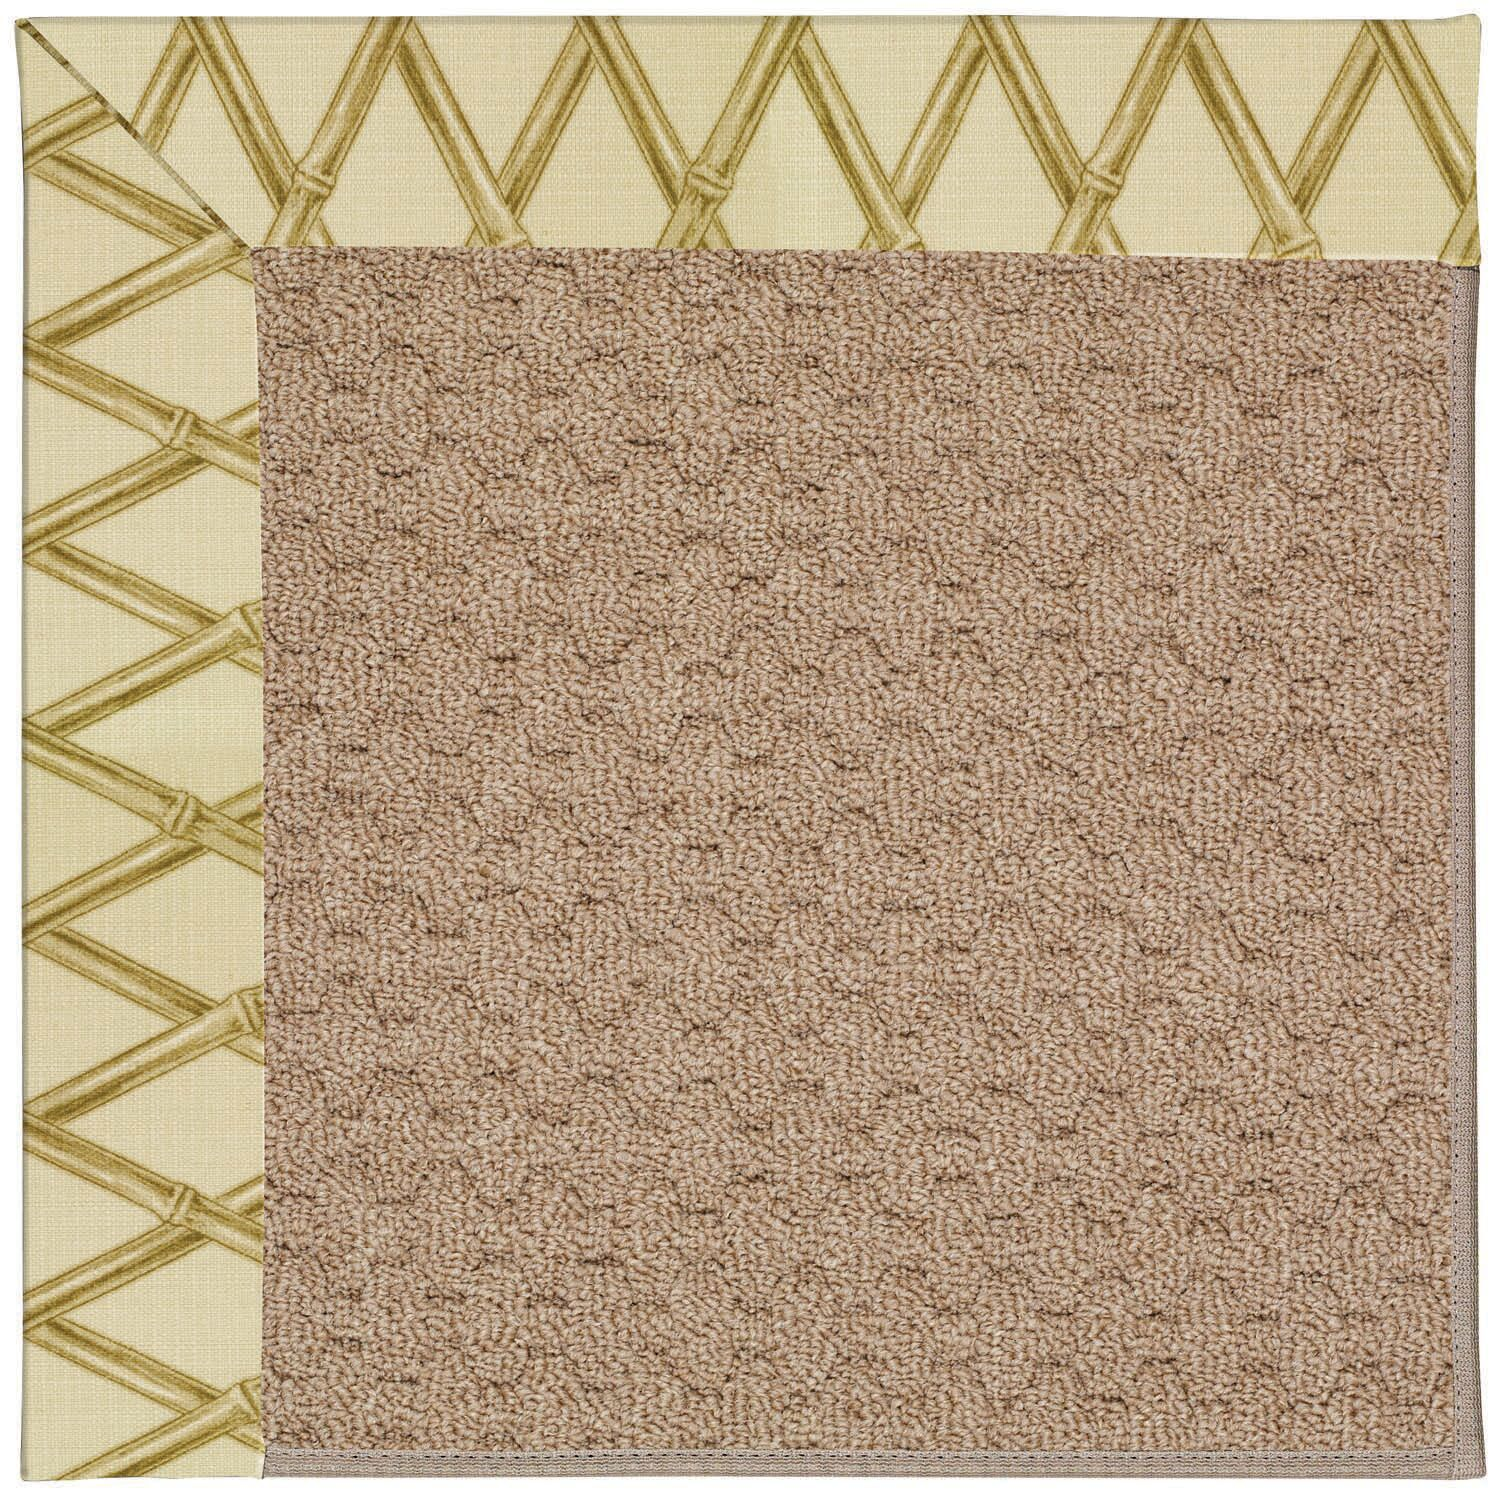 Lisle Machine Tufted Bamboo and Beige Indoor/Outdoor Area Rug Rug Size: Square 6'